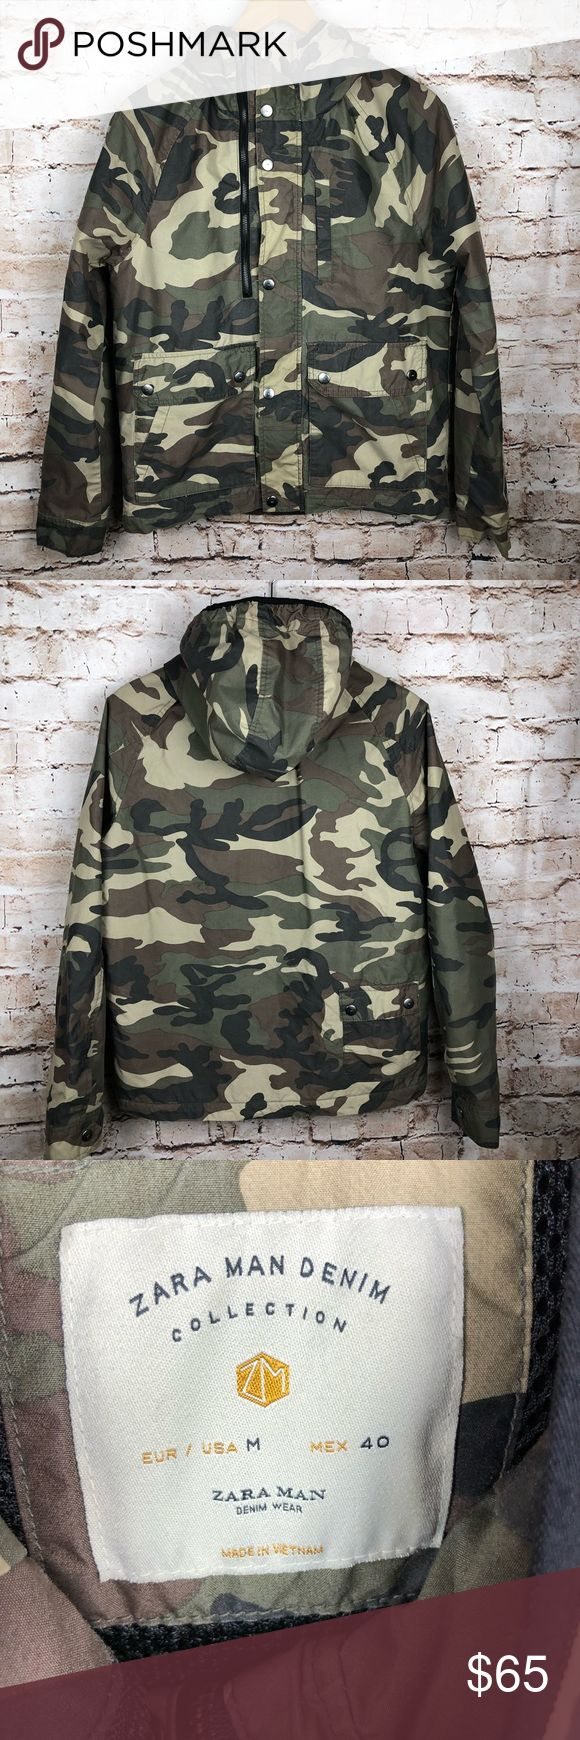 """ZARA man multi pocket army camo jacket Size M In good condition  Size M  pit to pit 21""""  top to bottom 26""""  Comes from pet and smoke free home Zara Jackets & Coats Military & Field"""